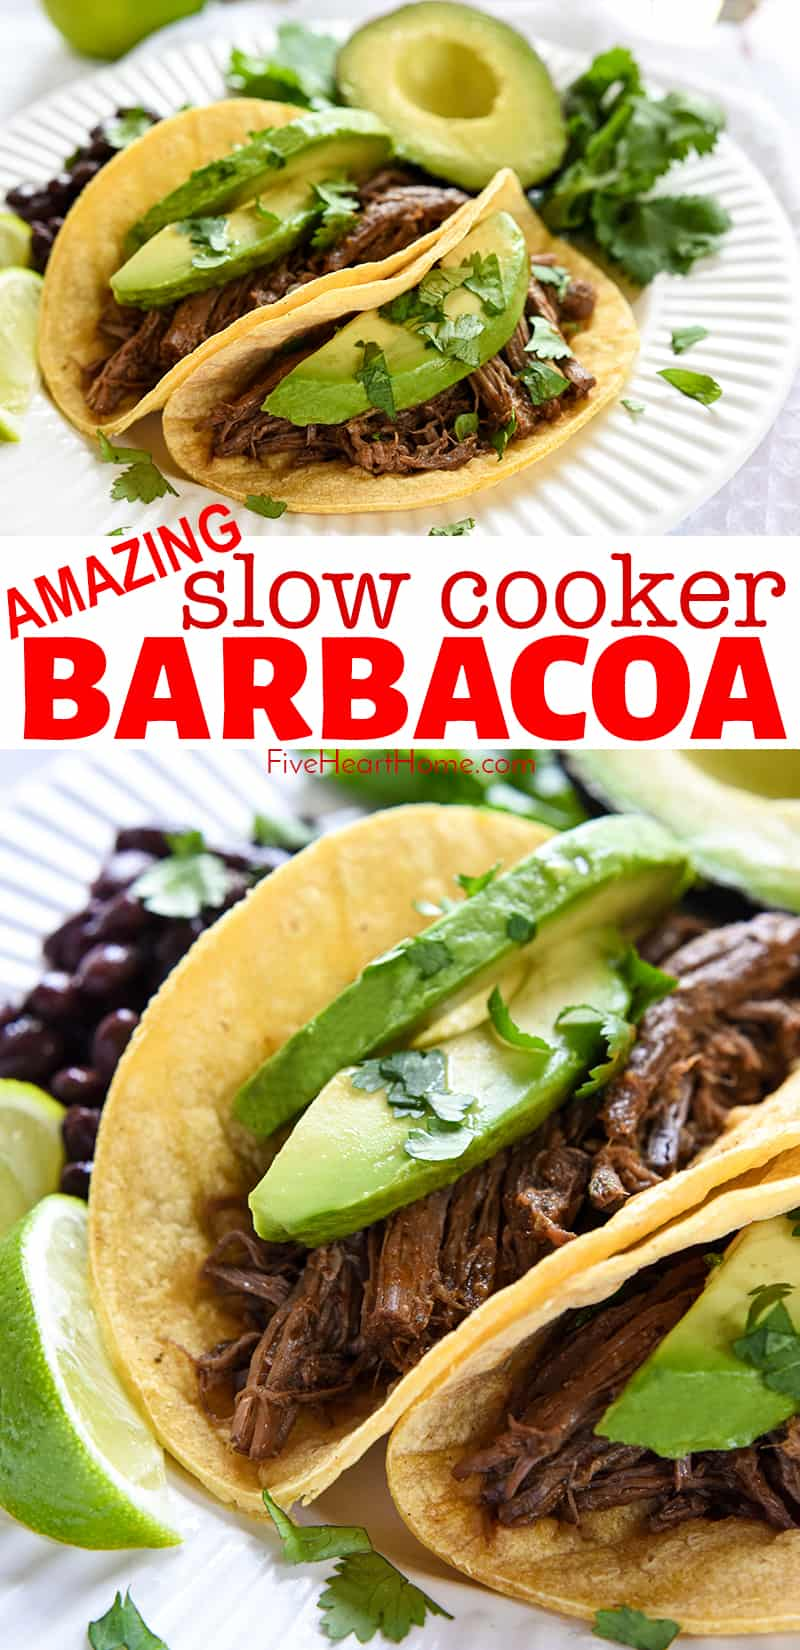 Slow Cooker Barbacoa ~ a delicious addition to tacos, burritos, rice bowls, salads, and more...and this easy, succulent, crockpot version is bursting with chipotles, garlic, cilantro, & Mexican spices! | FiveHeartHome.com #barbacoa #tacos #tacotuesday #beefbarbacoa